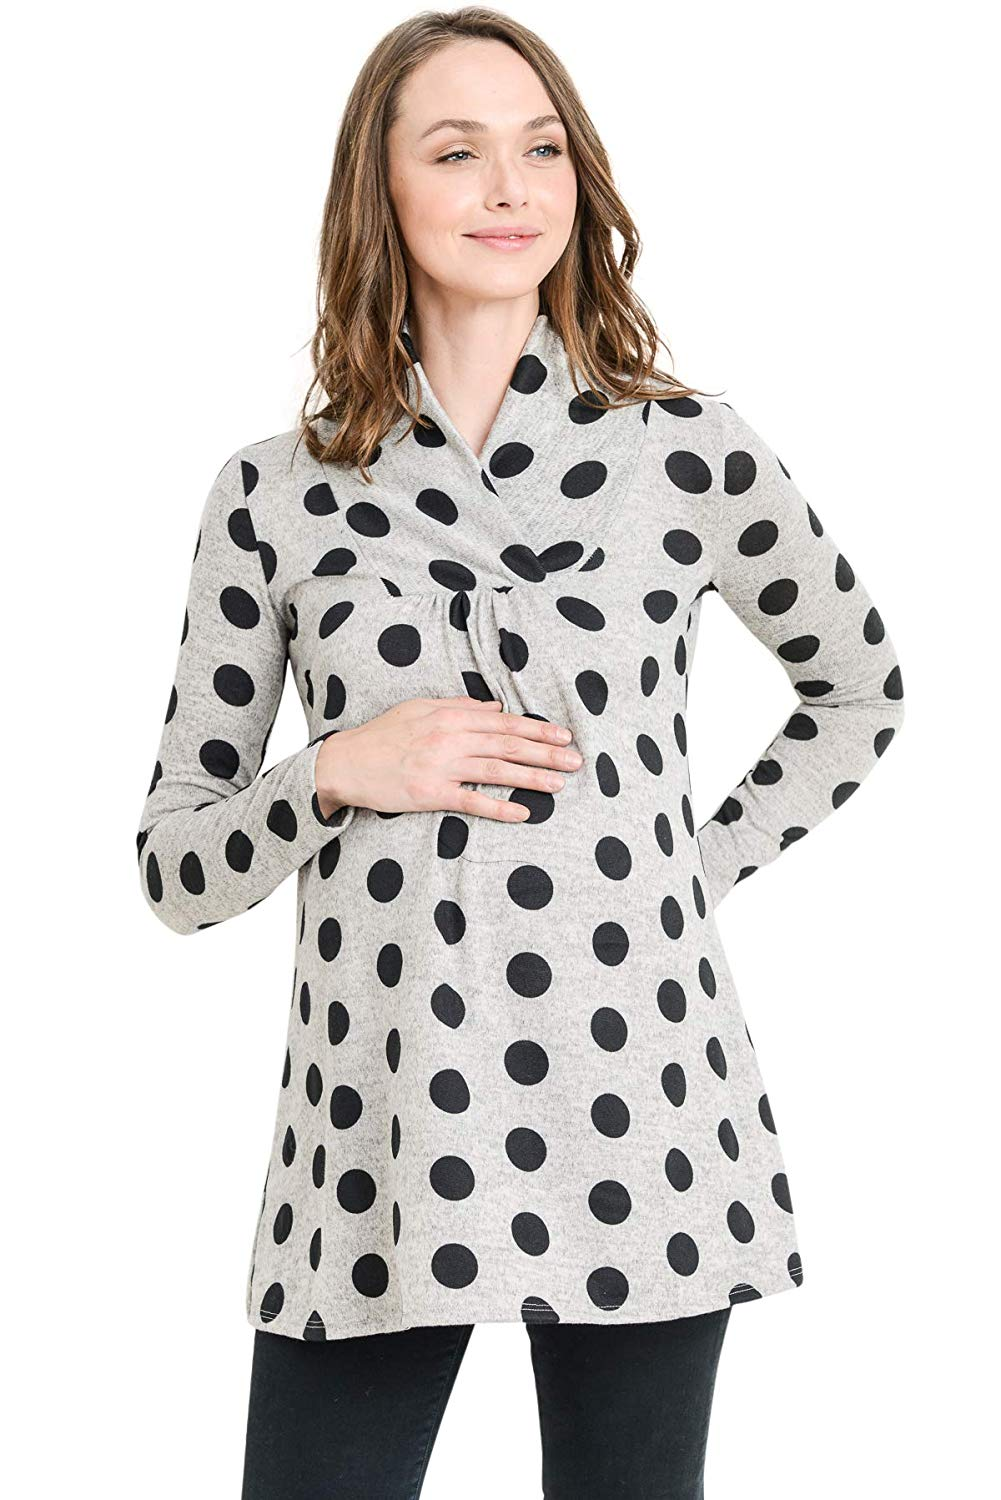 Polka Dot Knit Maternity Tunic Top - Mommylicious